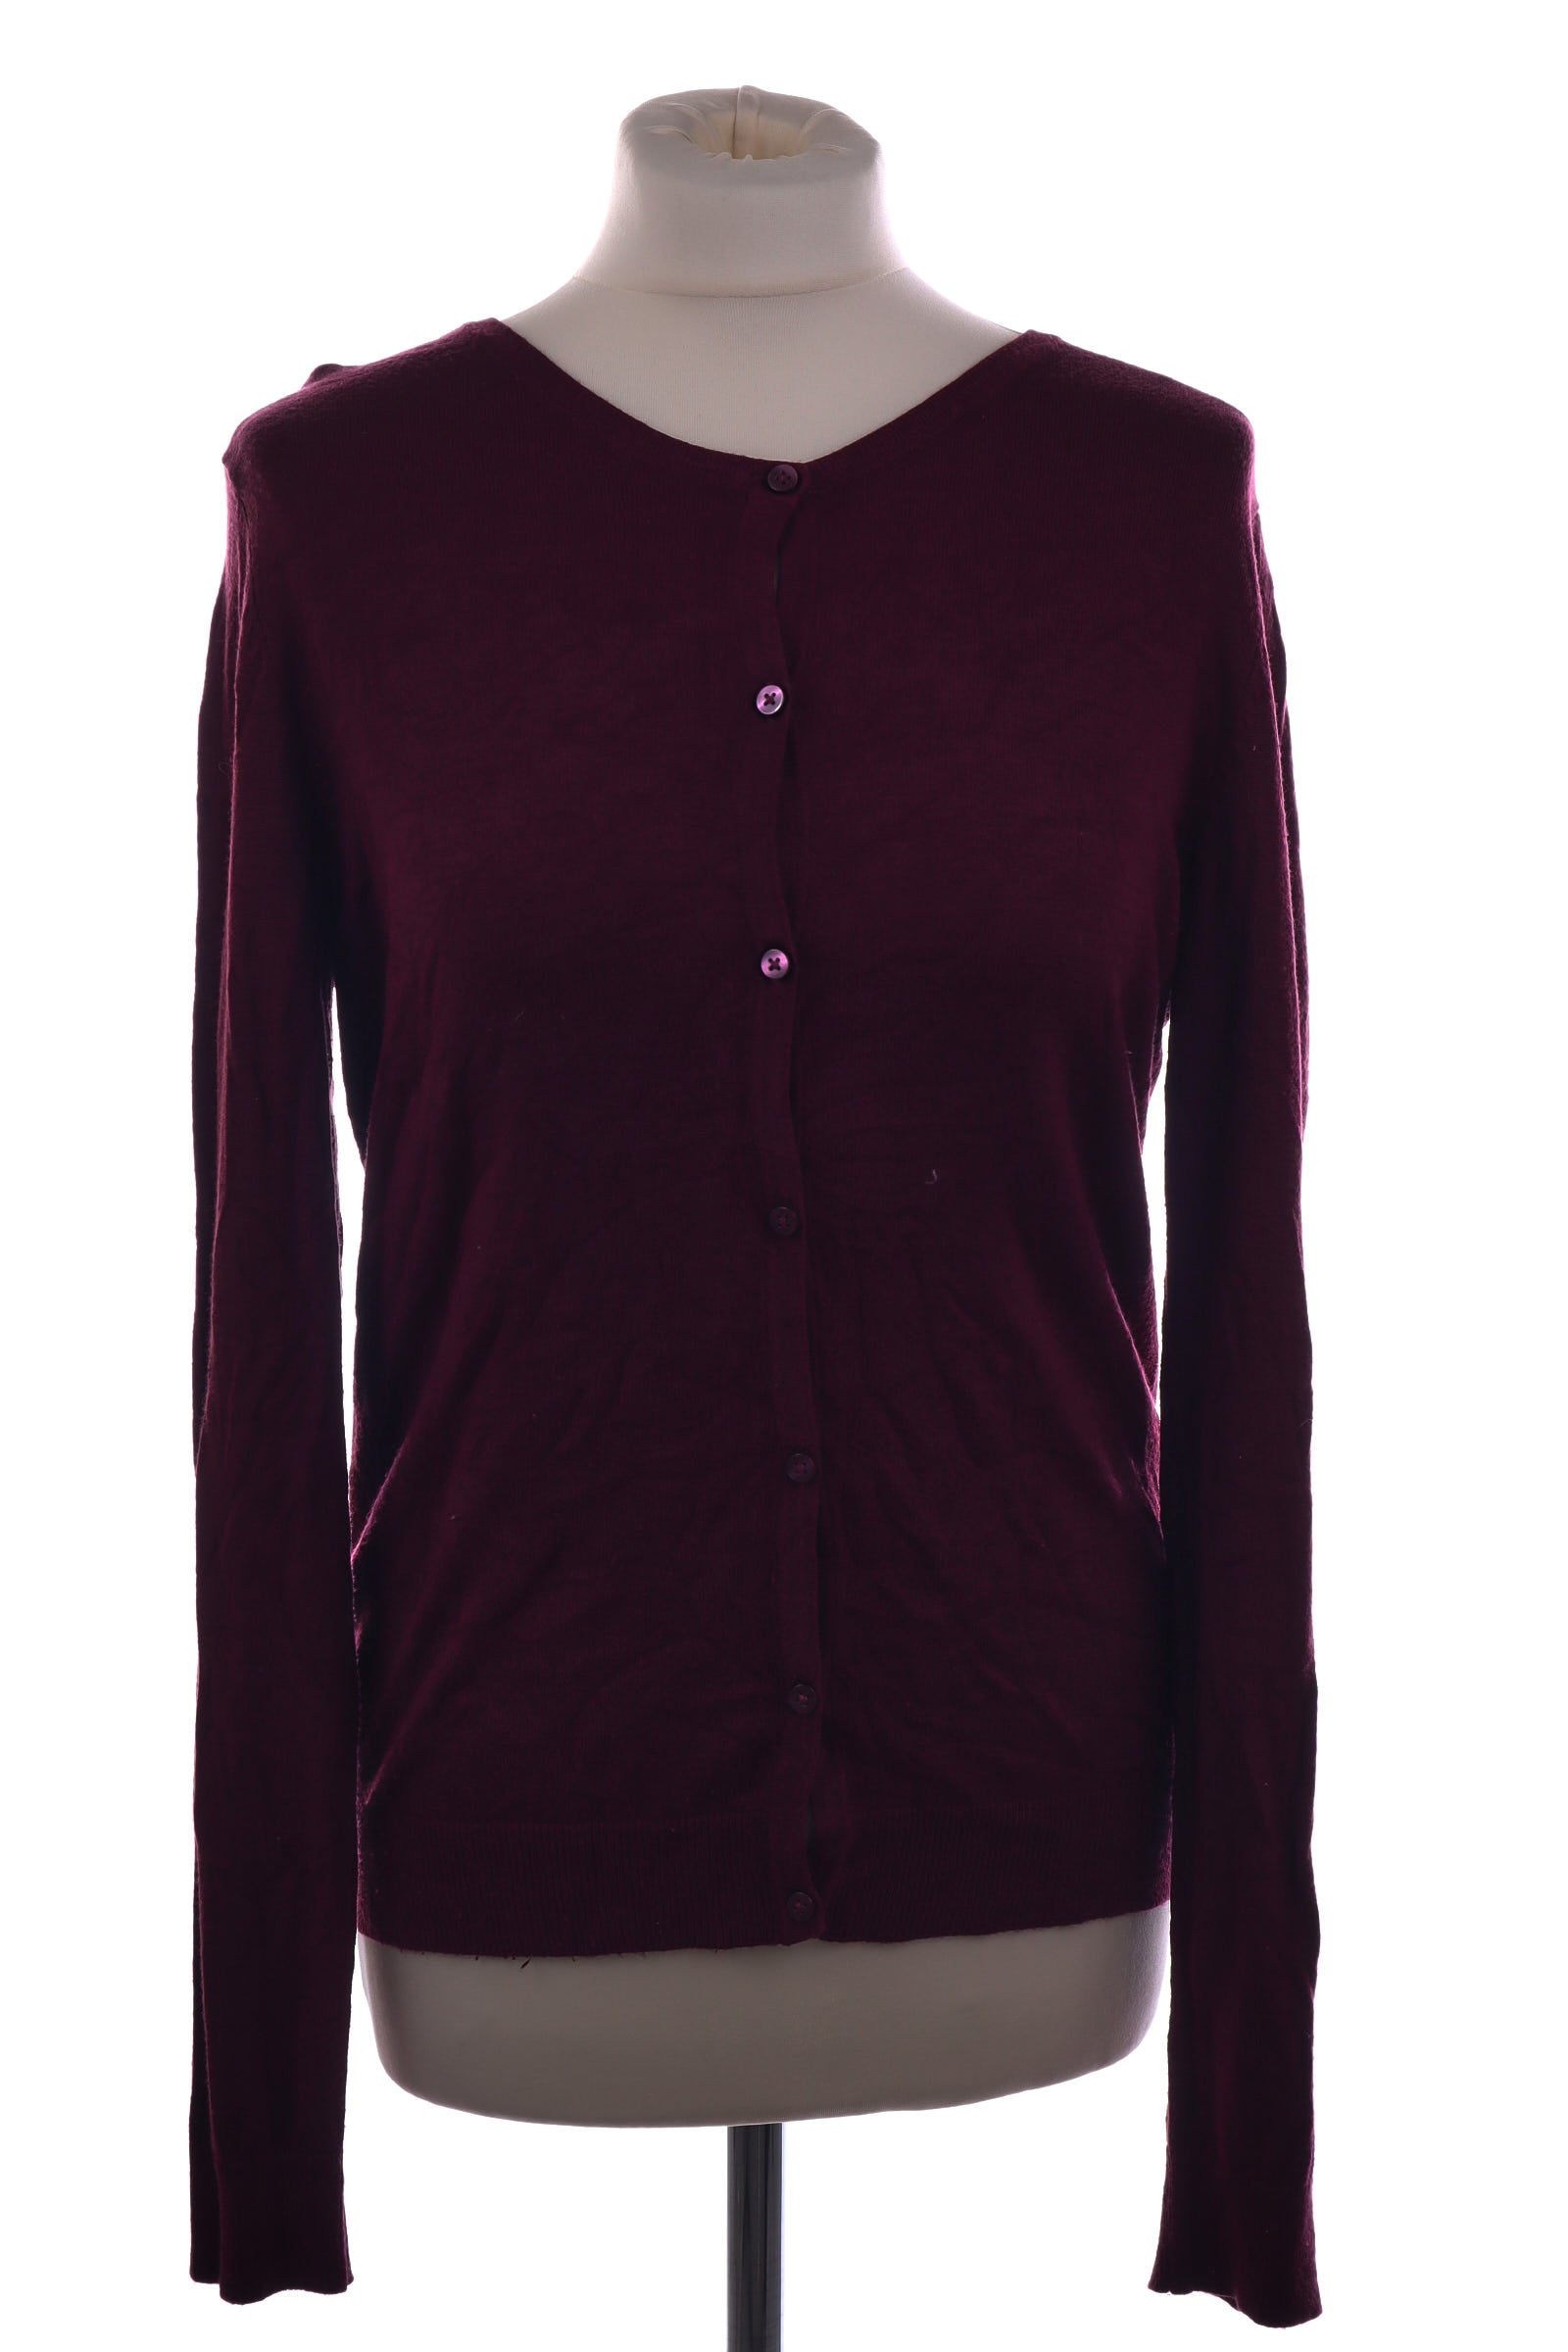 Only Burgundy Sweater